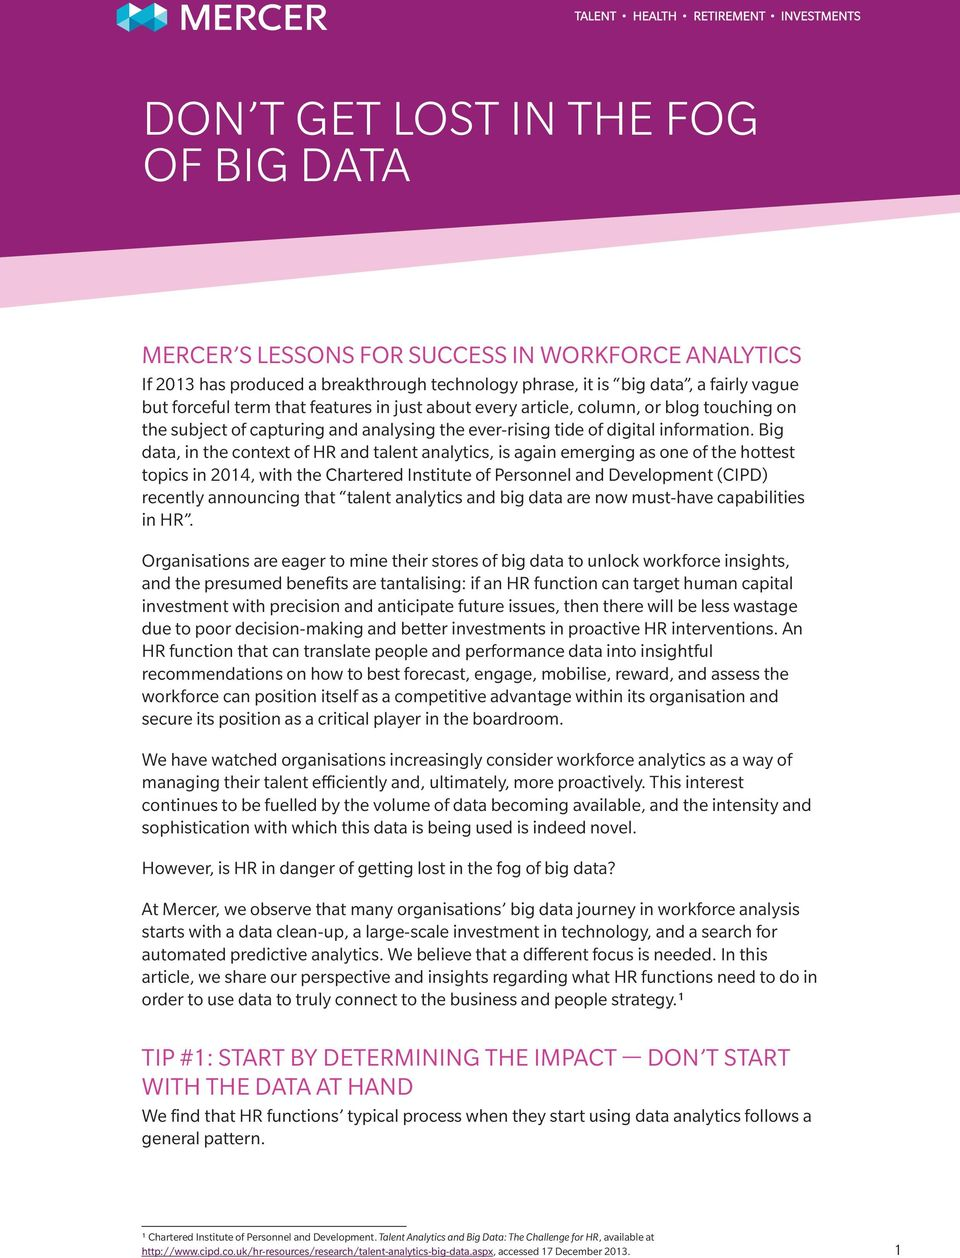 Big data, in the context of HR and talent analytics, is again emerging as one of the hottest topics in 2014, with the Chartered Institute of Personnel and Development (CIPD) recently announcing that